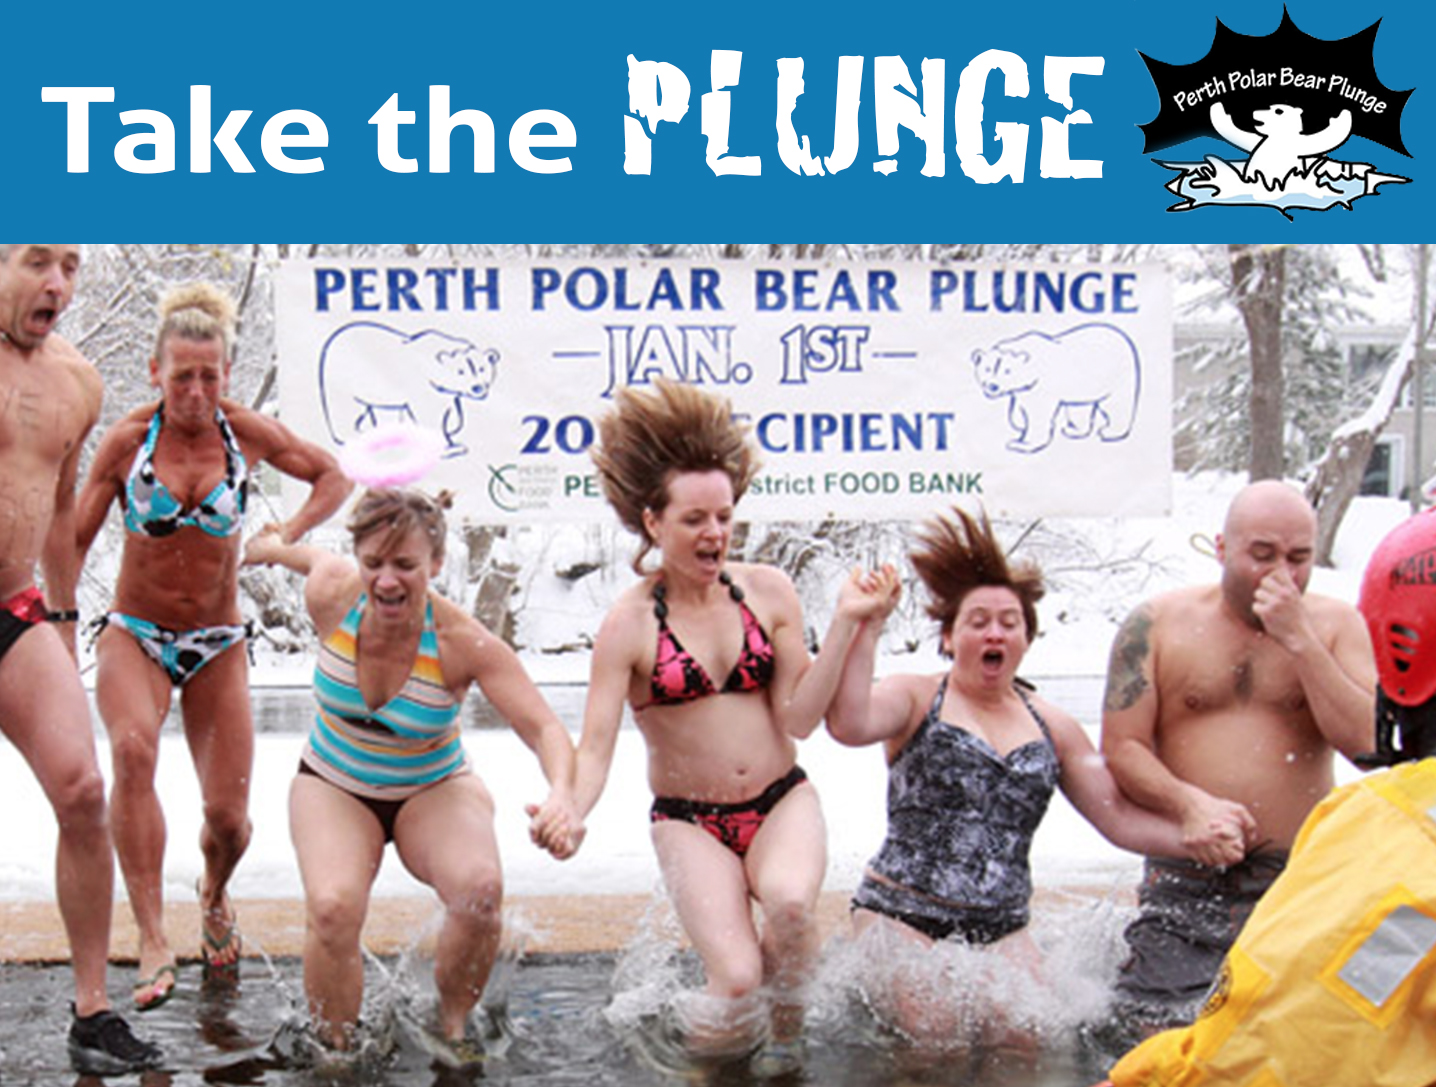 Take the Plunge and Support Good Food For All